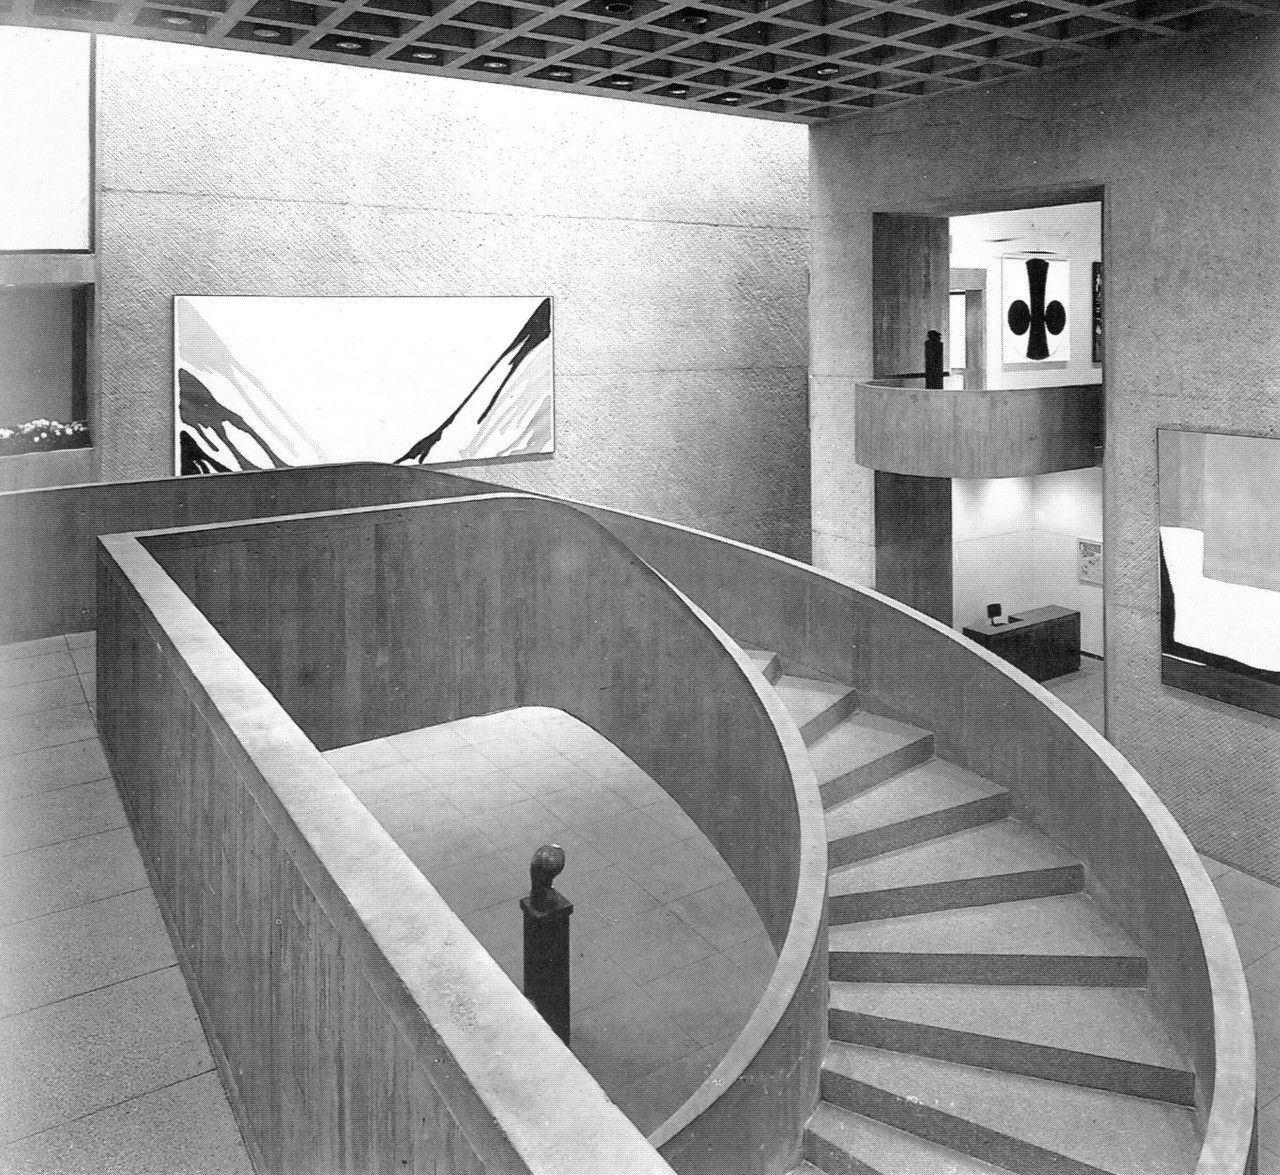 Beton Wendeltreppe Everson Museum Of Art Syracuse University I M Pei 1964